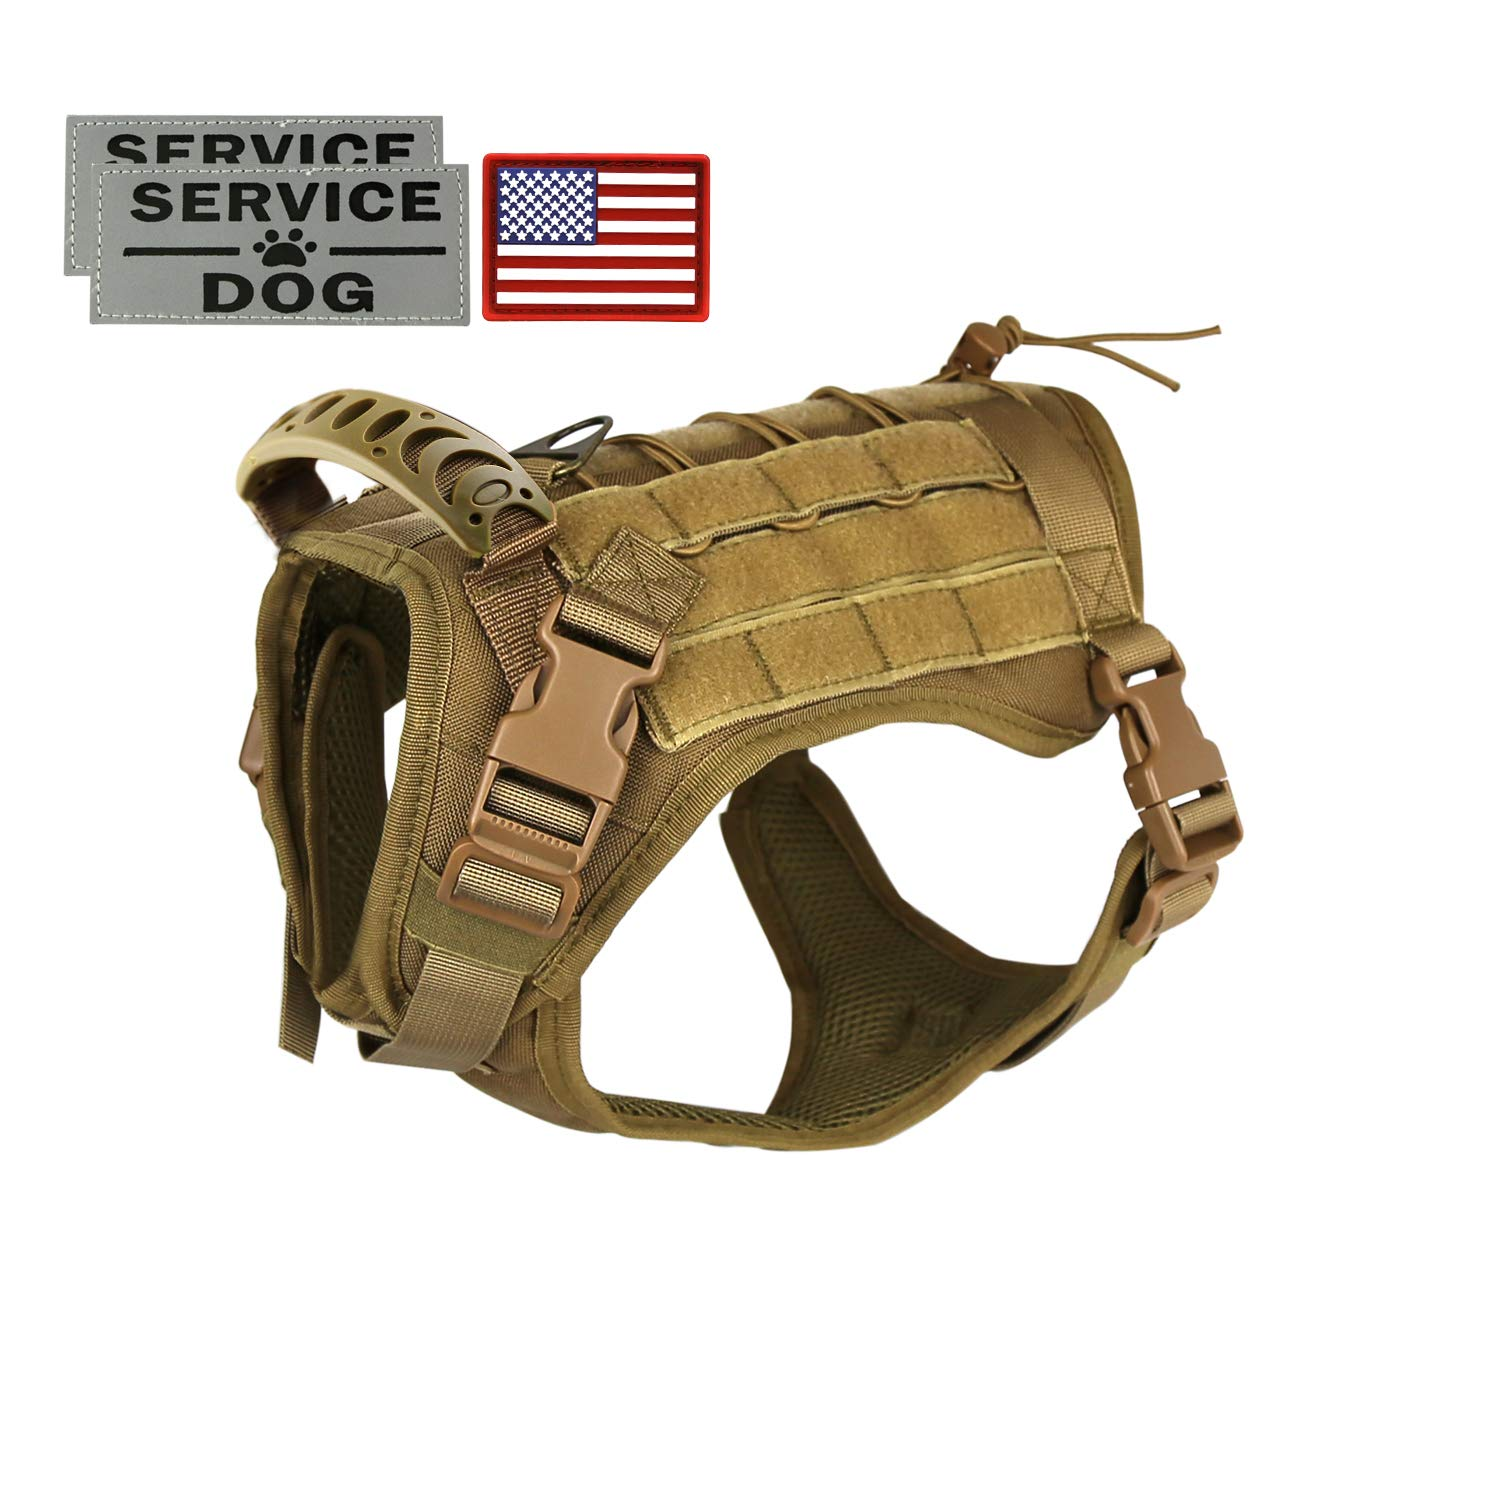 Tactical Service Dog Vest Harness Outdoor Training Handle Water-Resistant Comfortable Military Patrol K9 Dog Harness with Handle by Hanshengday